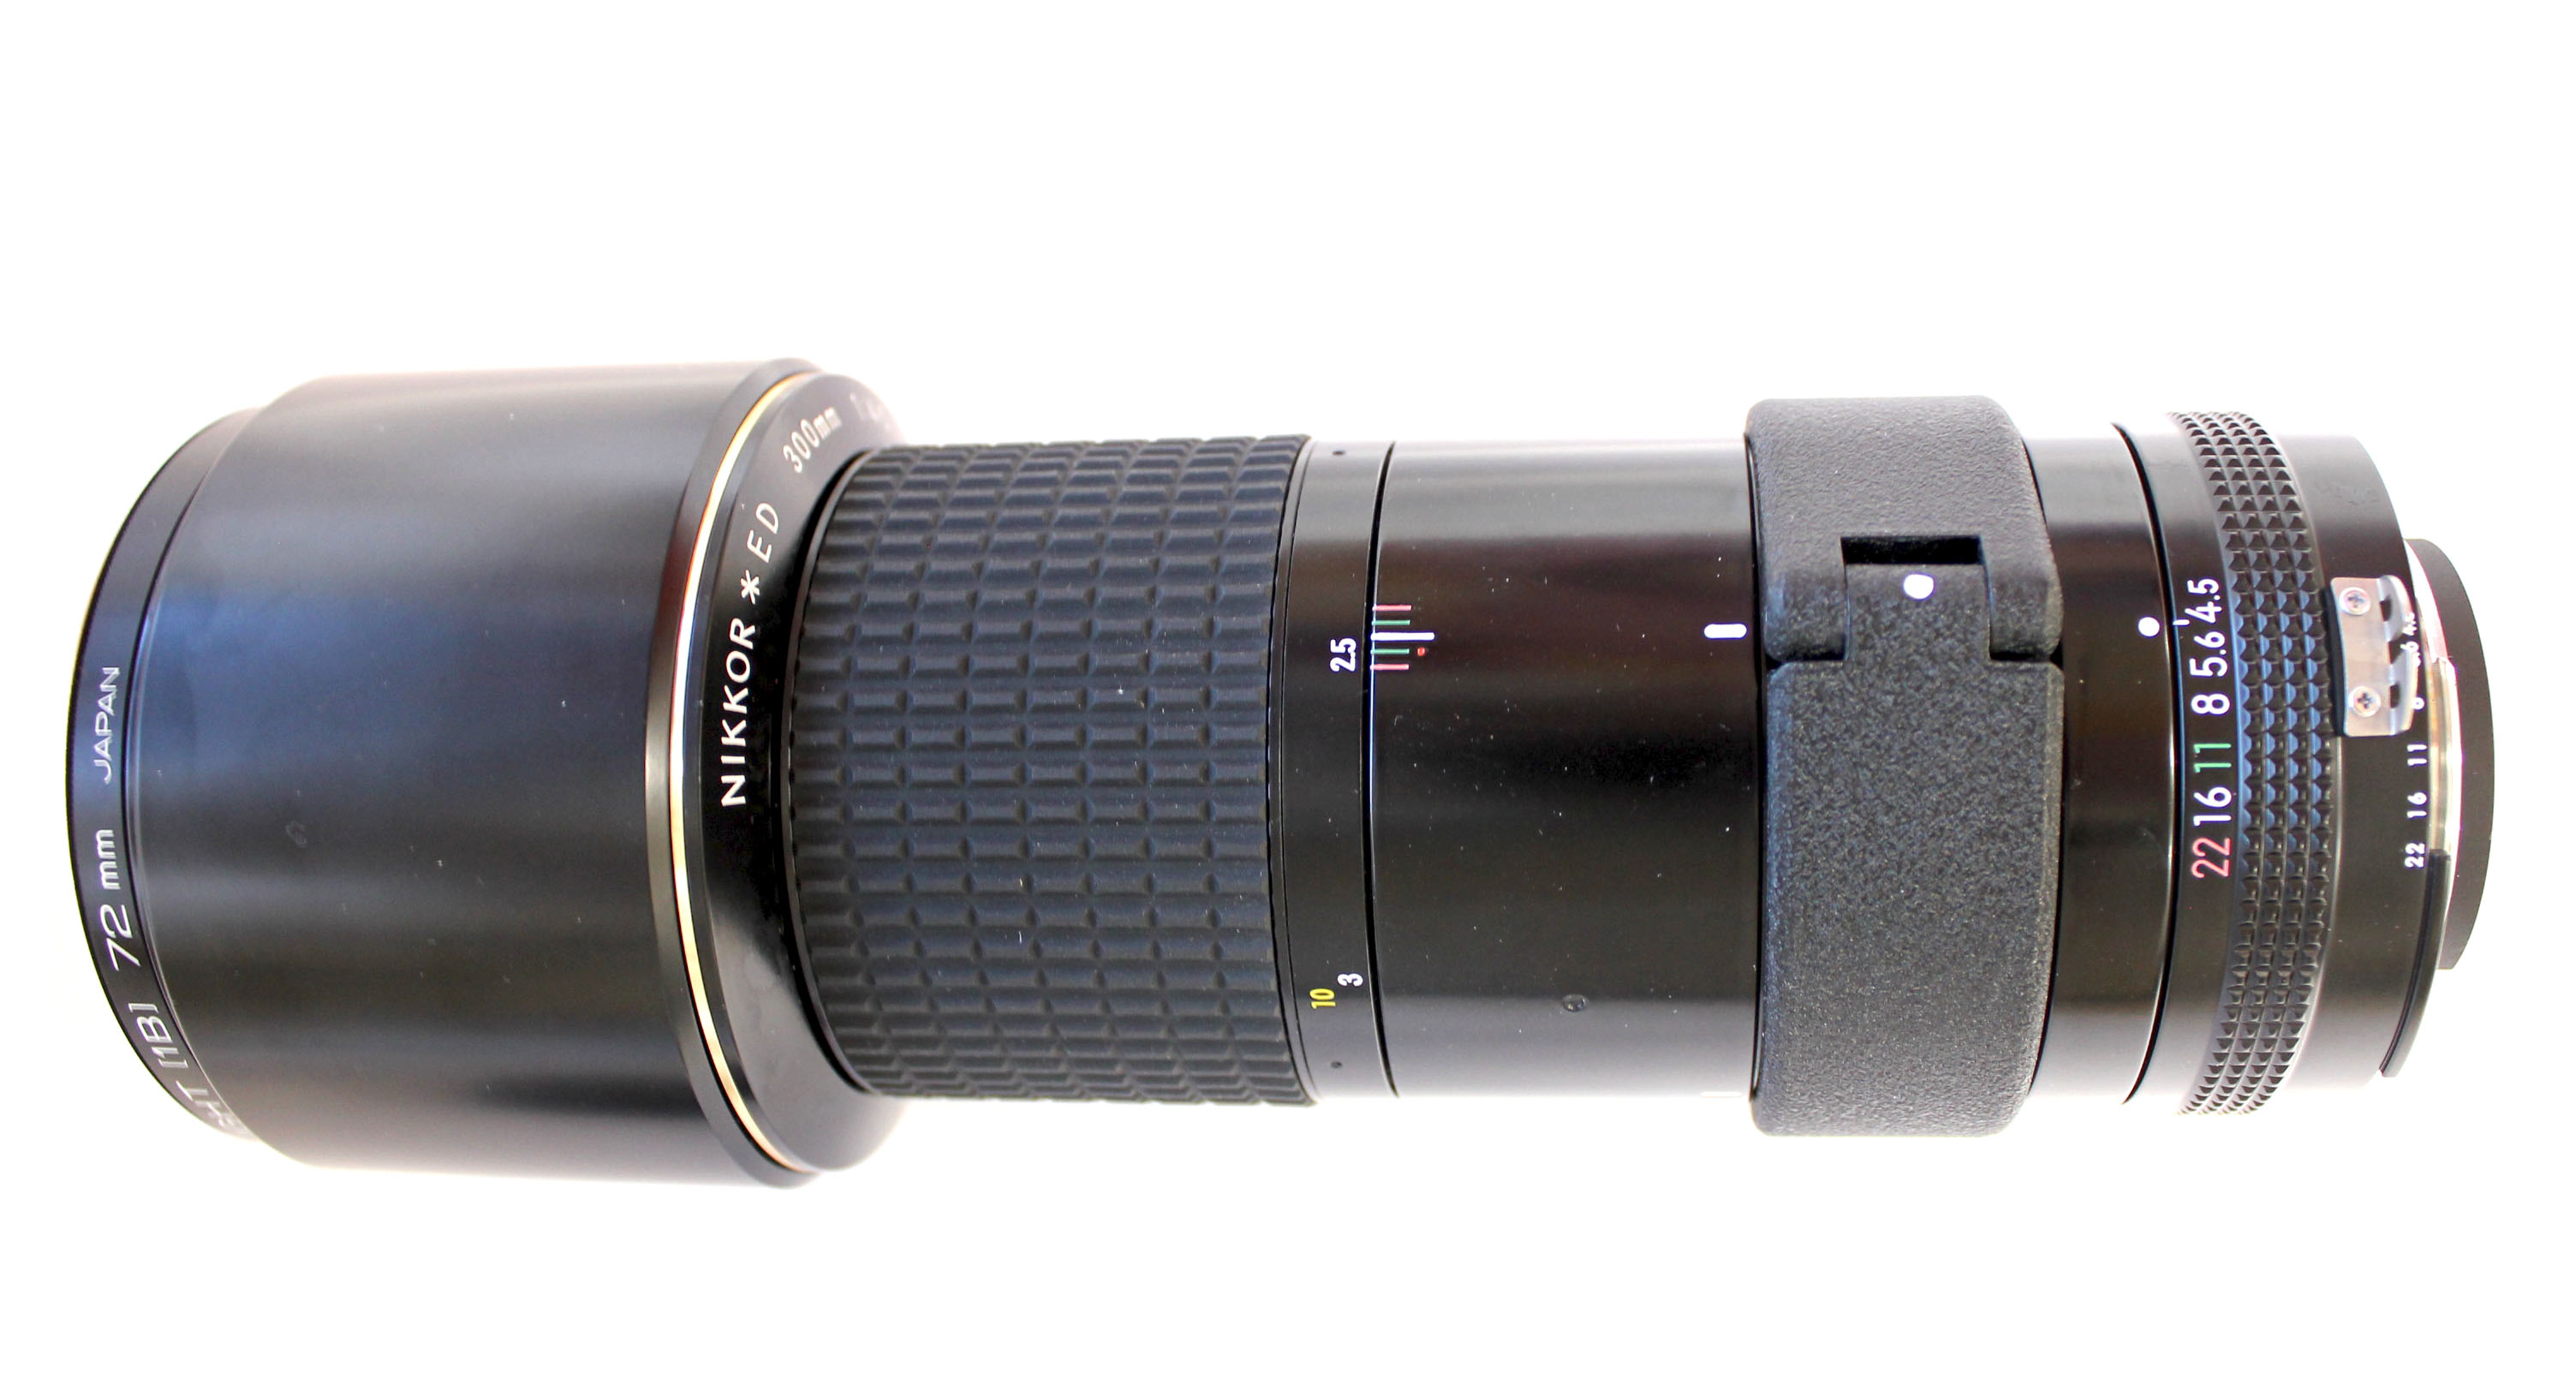 Nikon Ai Nikkor ED IF 300mm F/4.5 MF Telephoto Lens F Mount from Japan Photo 5